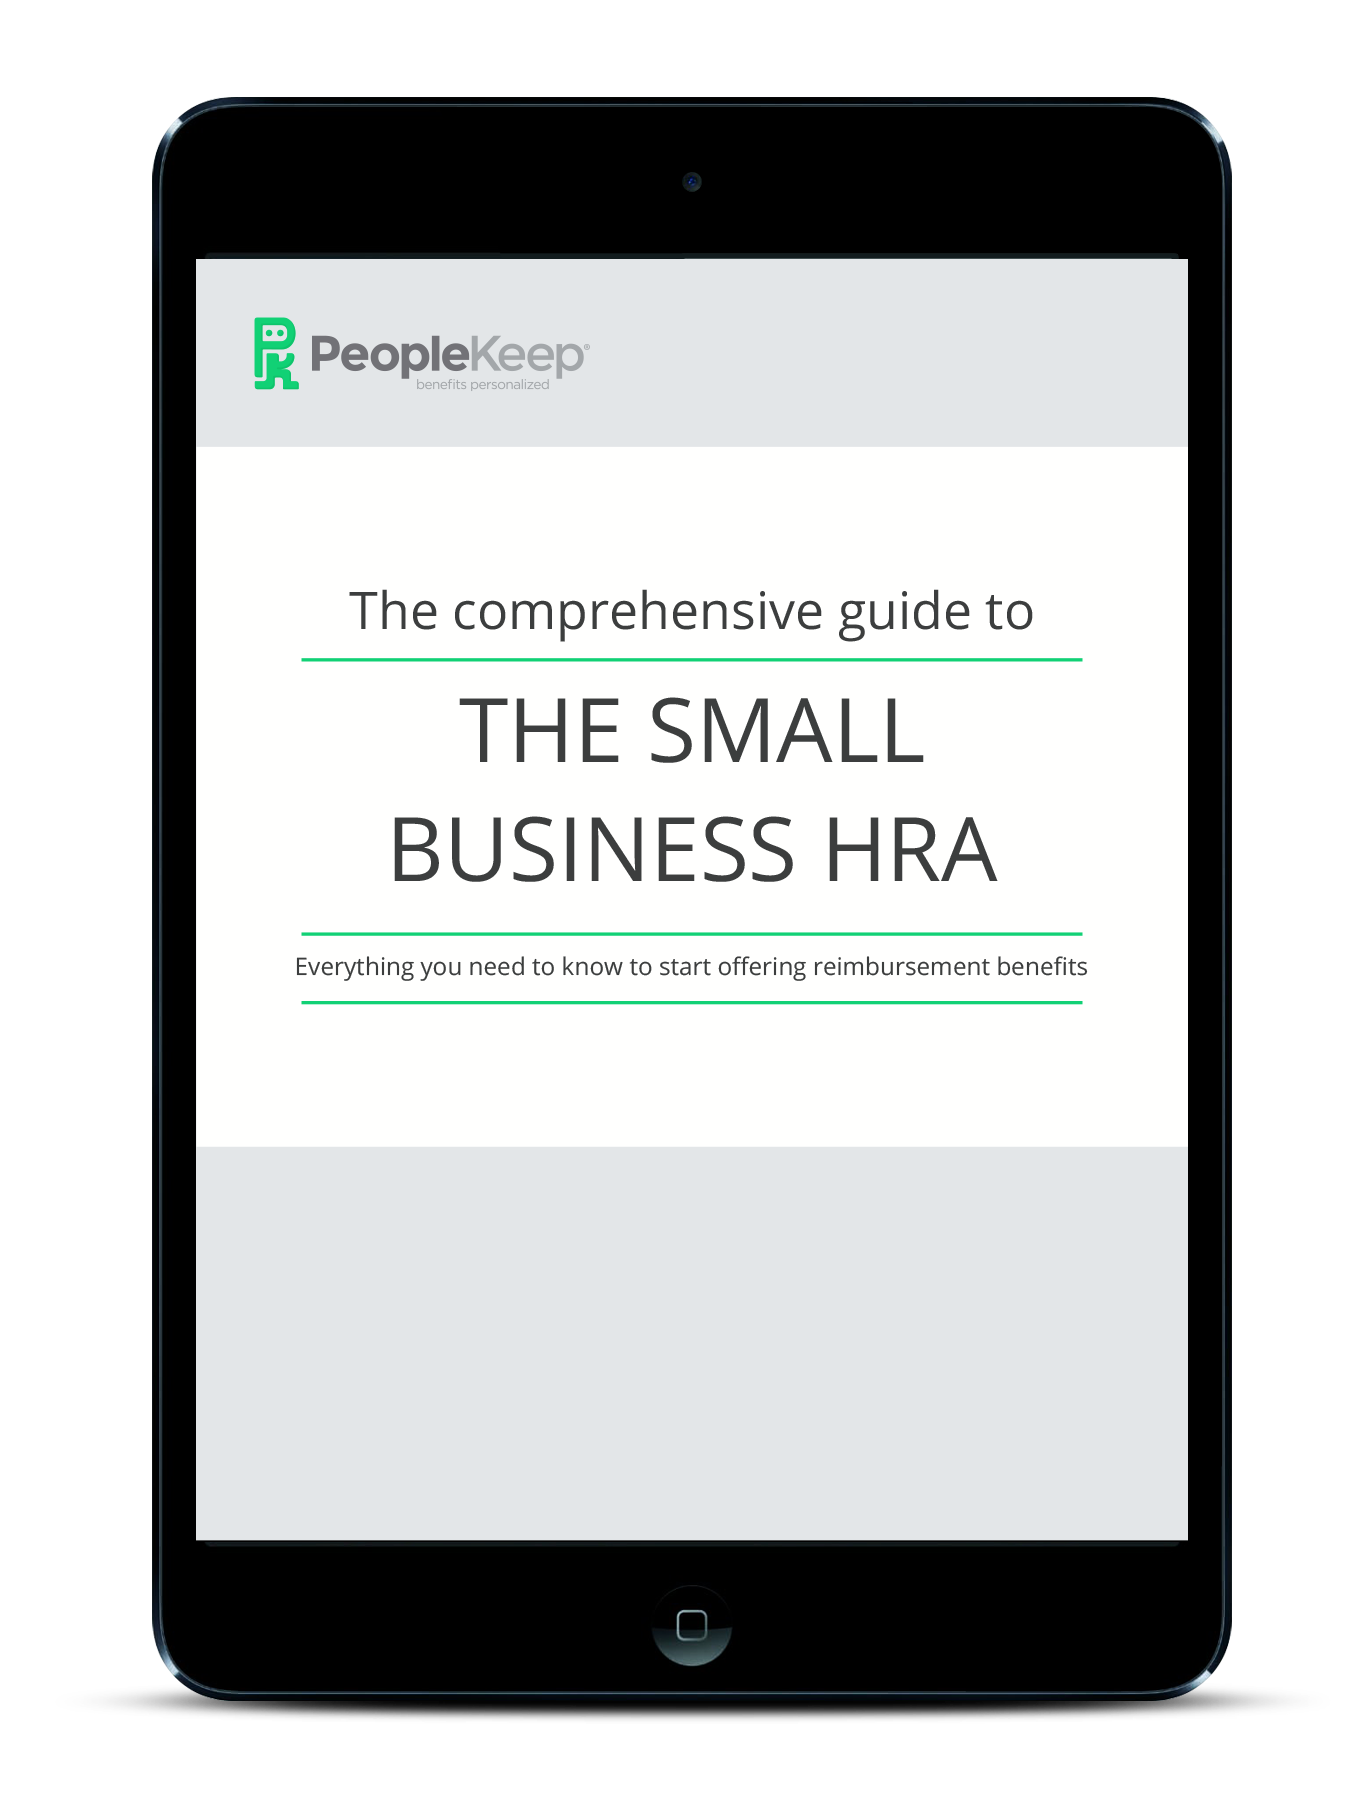 The Comprehensive Guide to the Small Business HRA